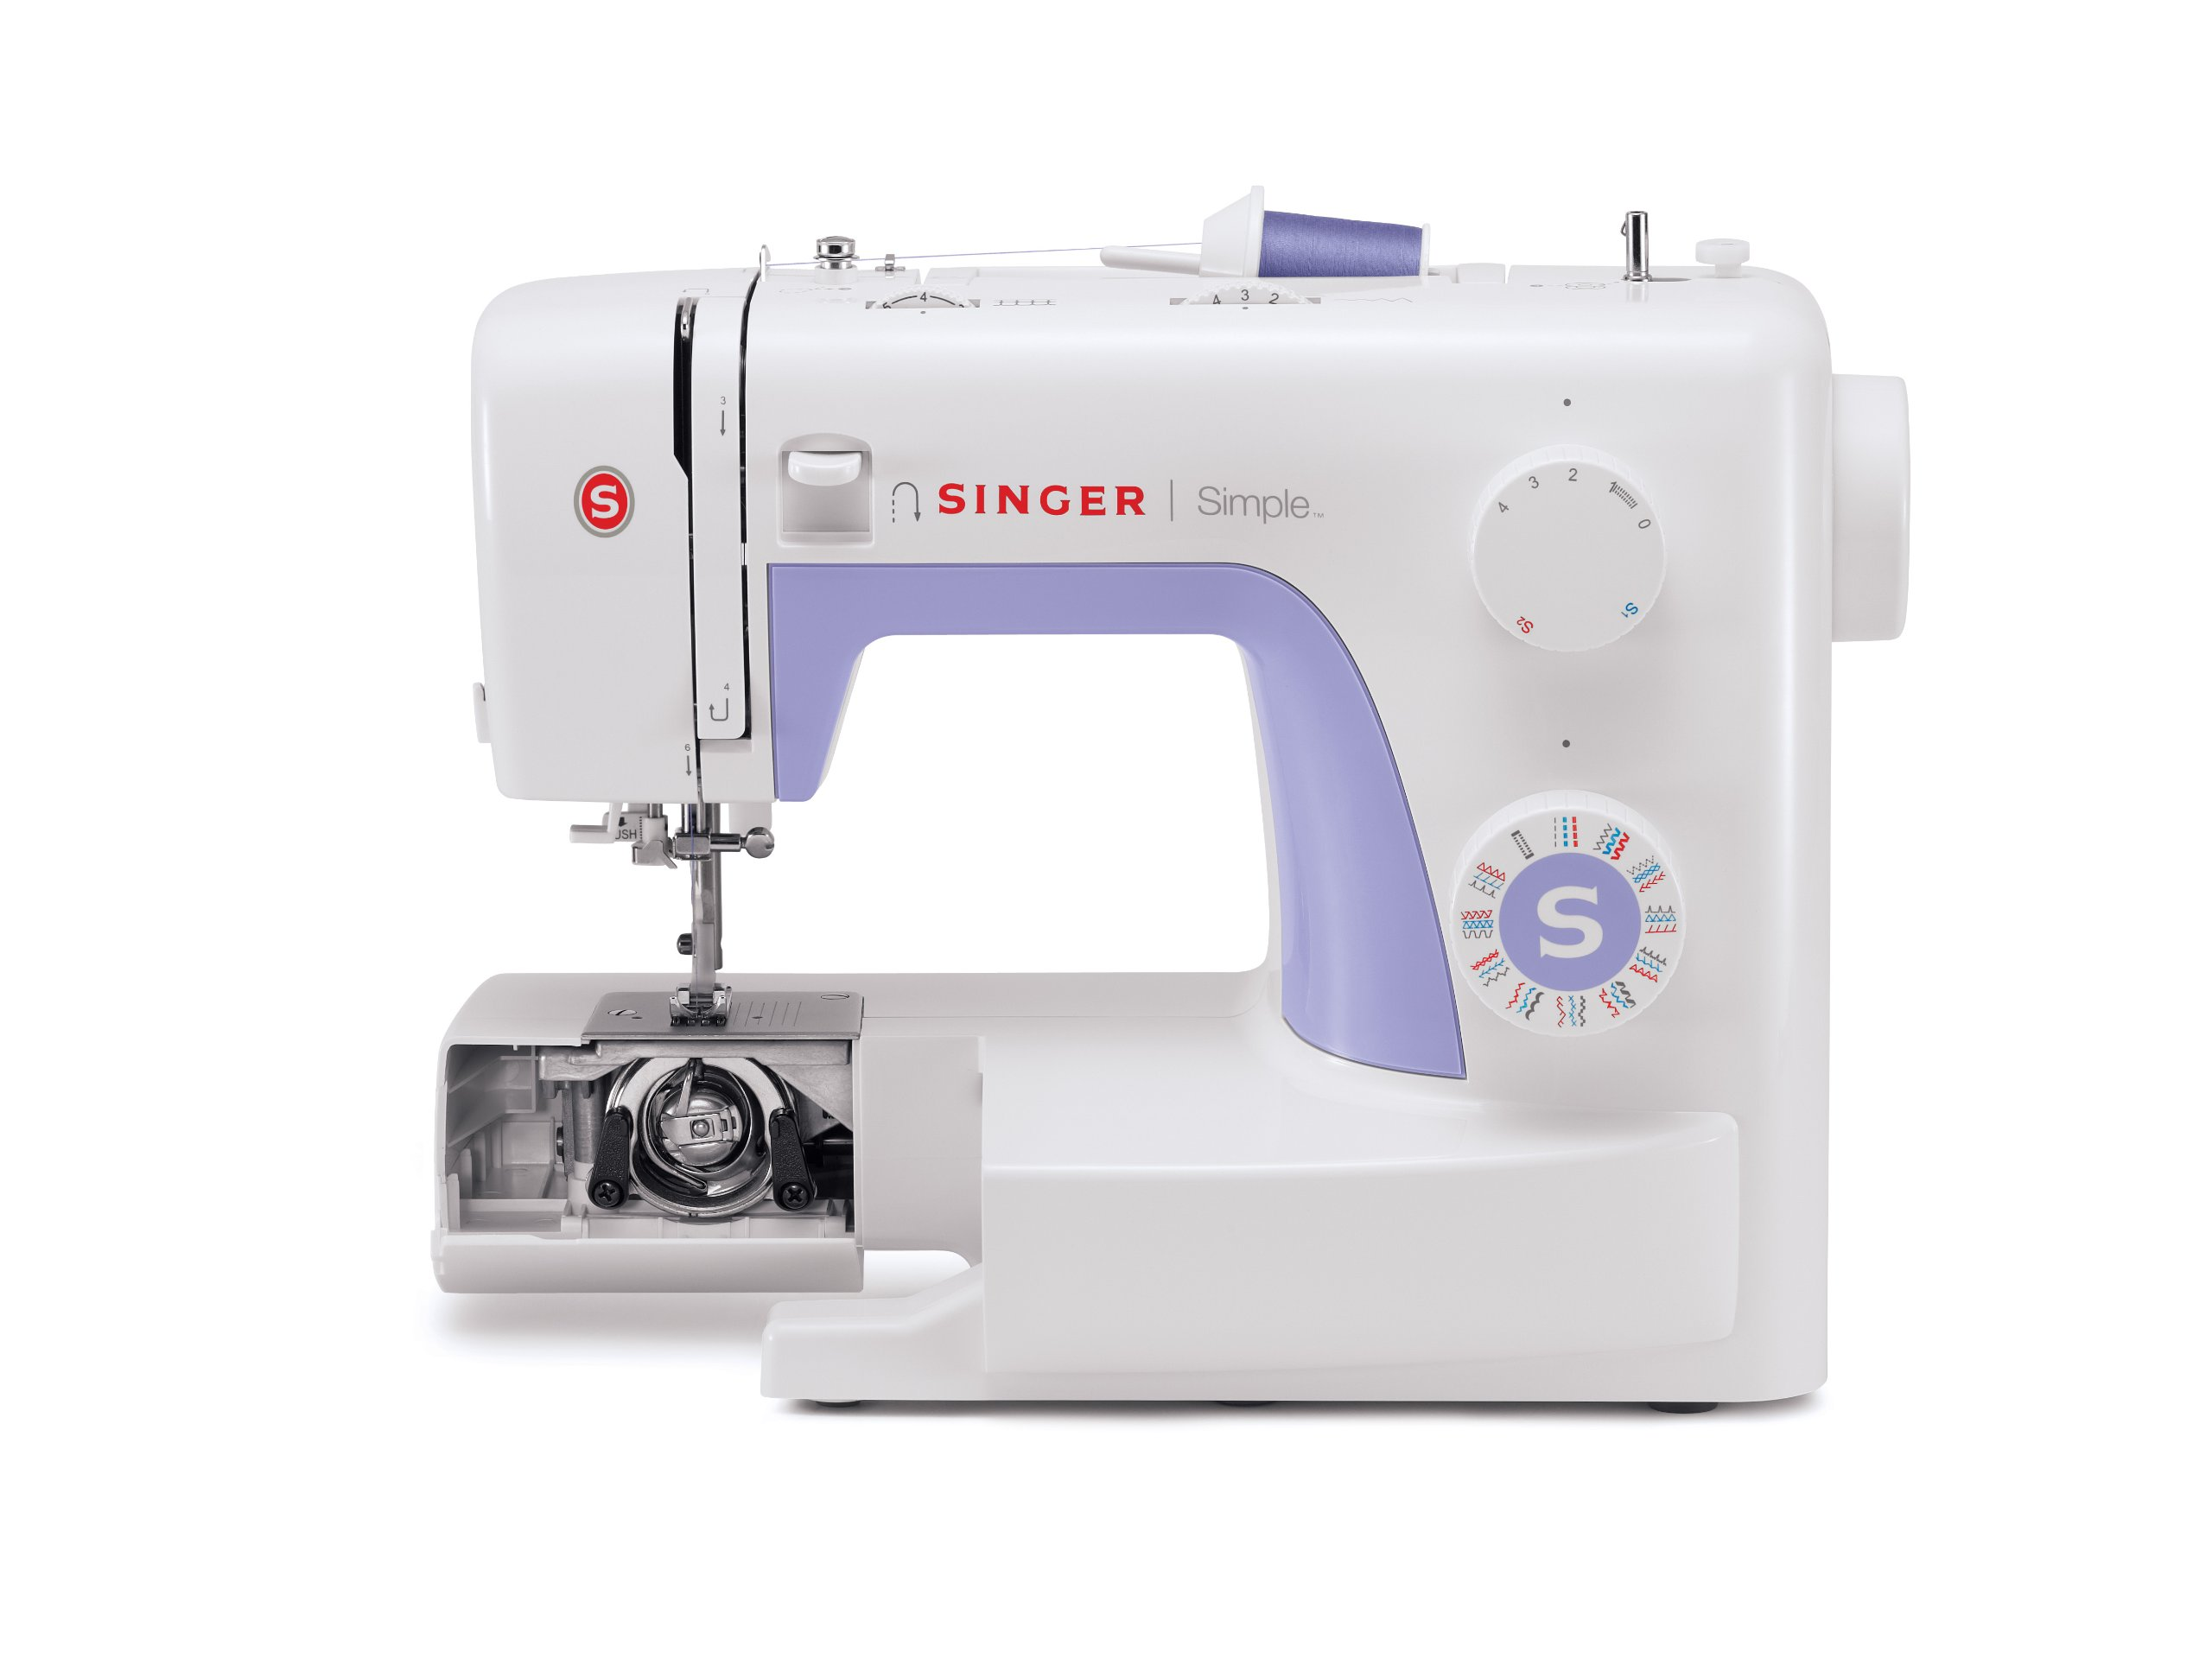 Singer 3232 Simple Portable Electric Sewing Machine with Automatic Needle Threader 32 Stitches